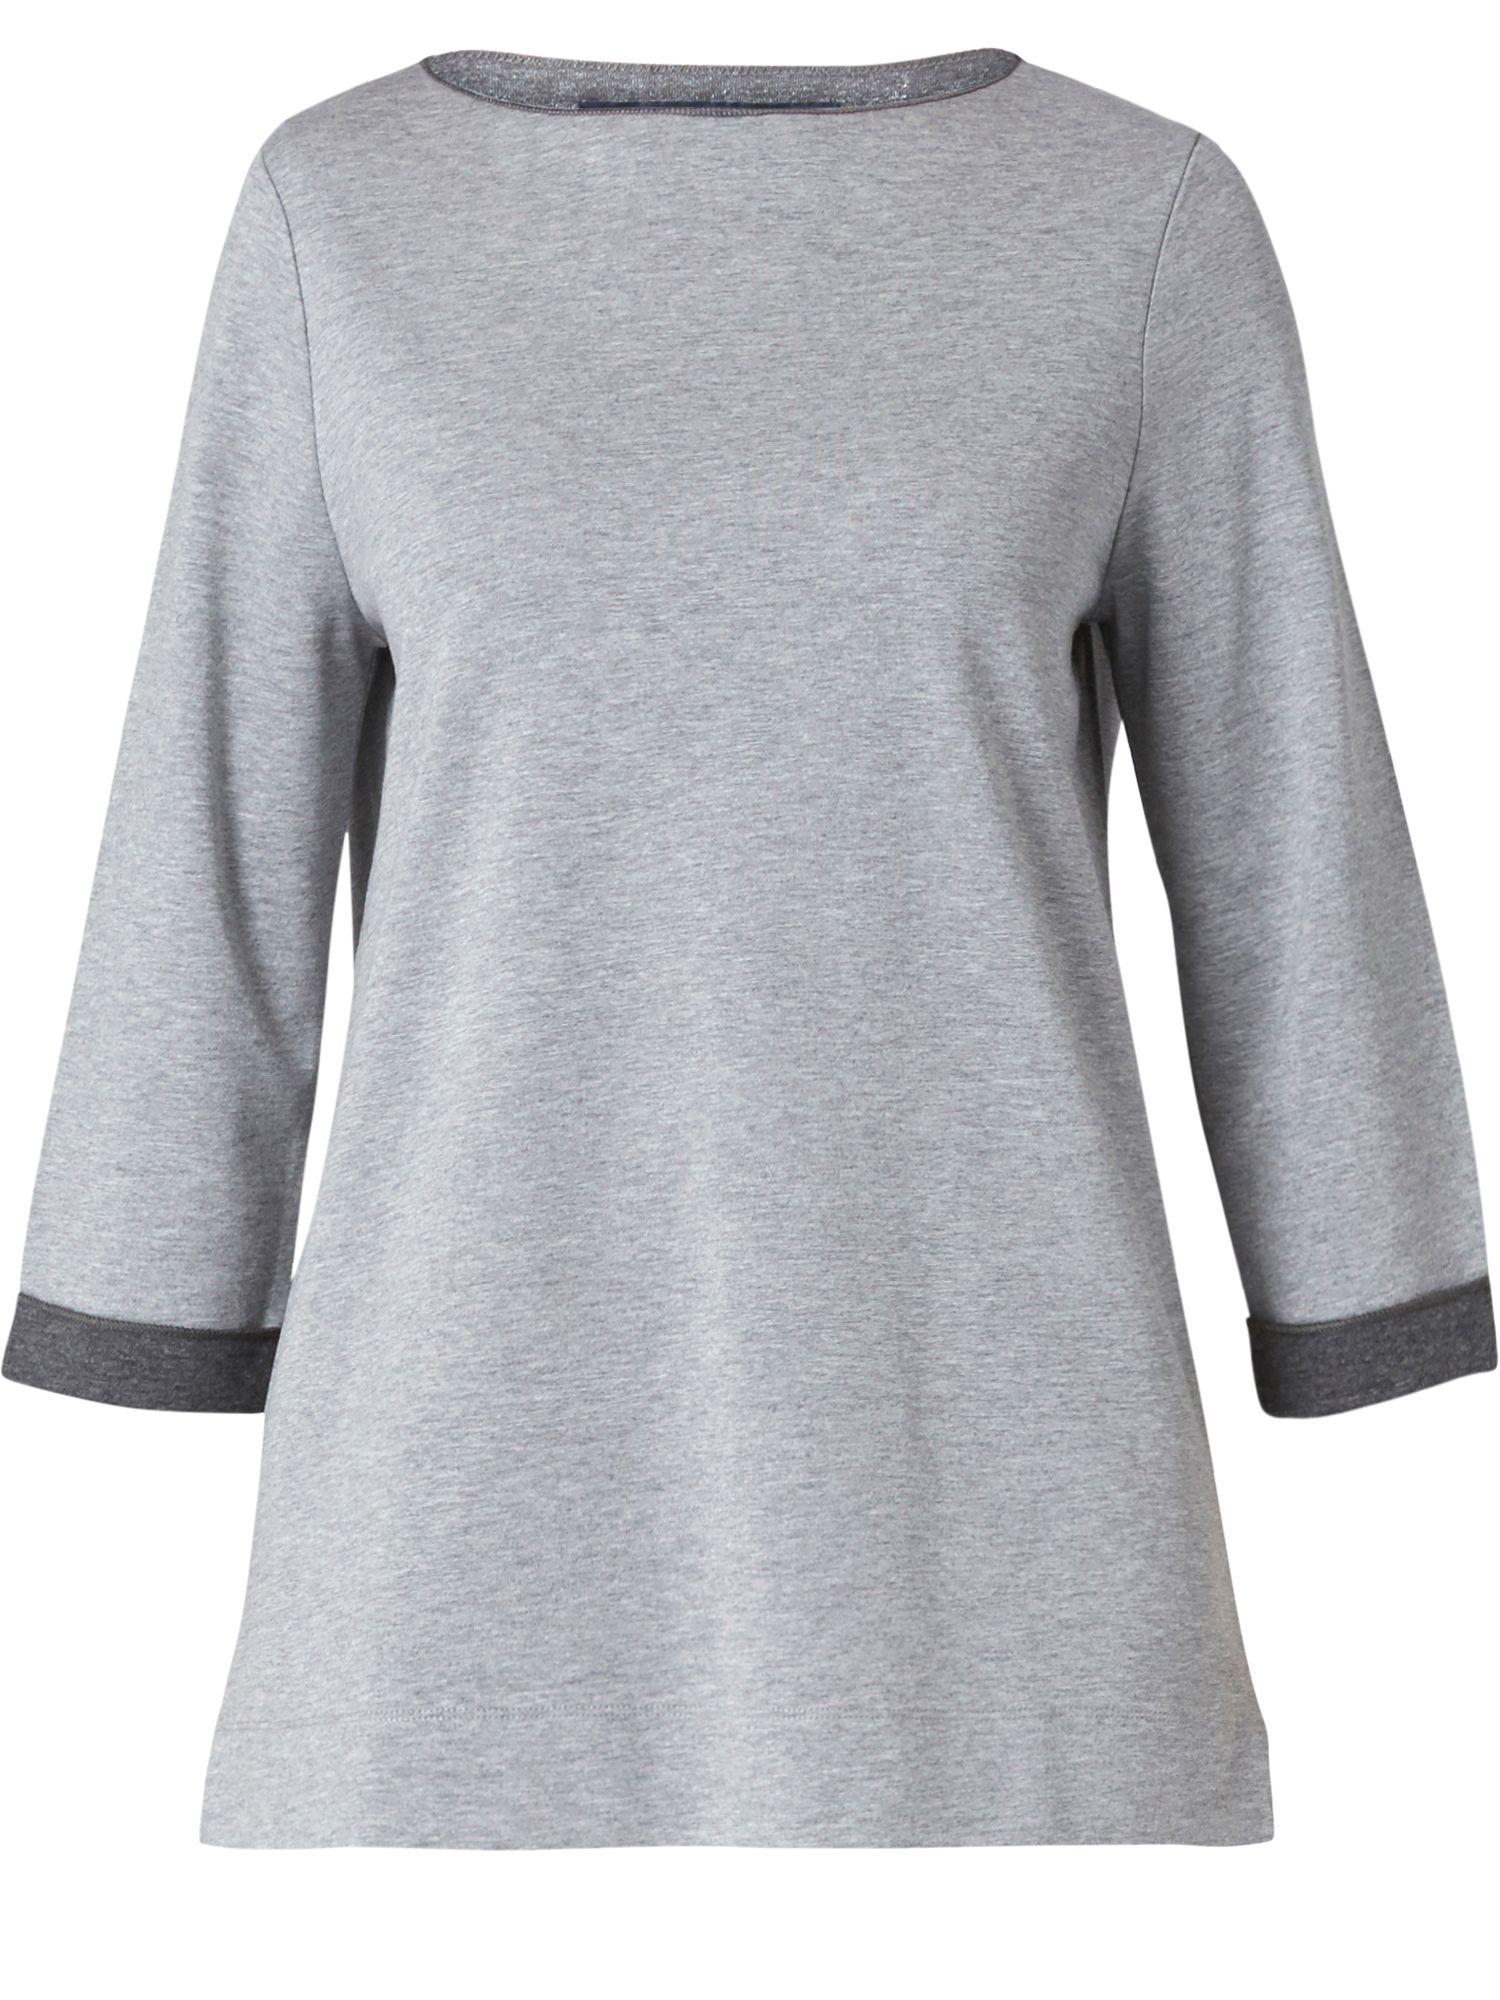 Helen McAlinden Tunic Top, Grey